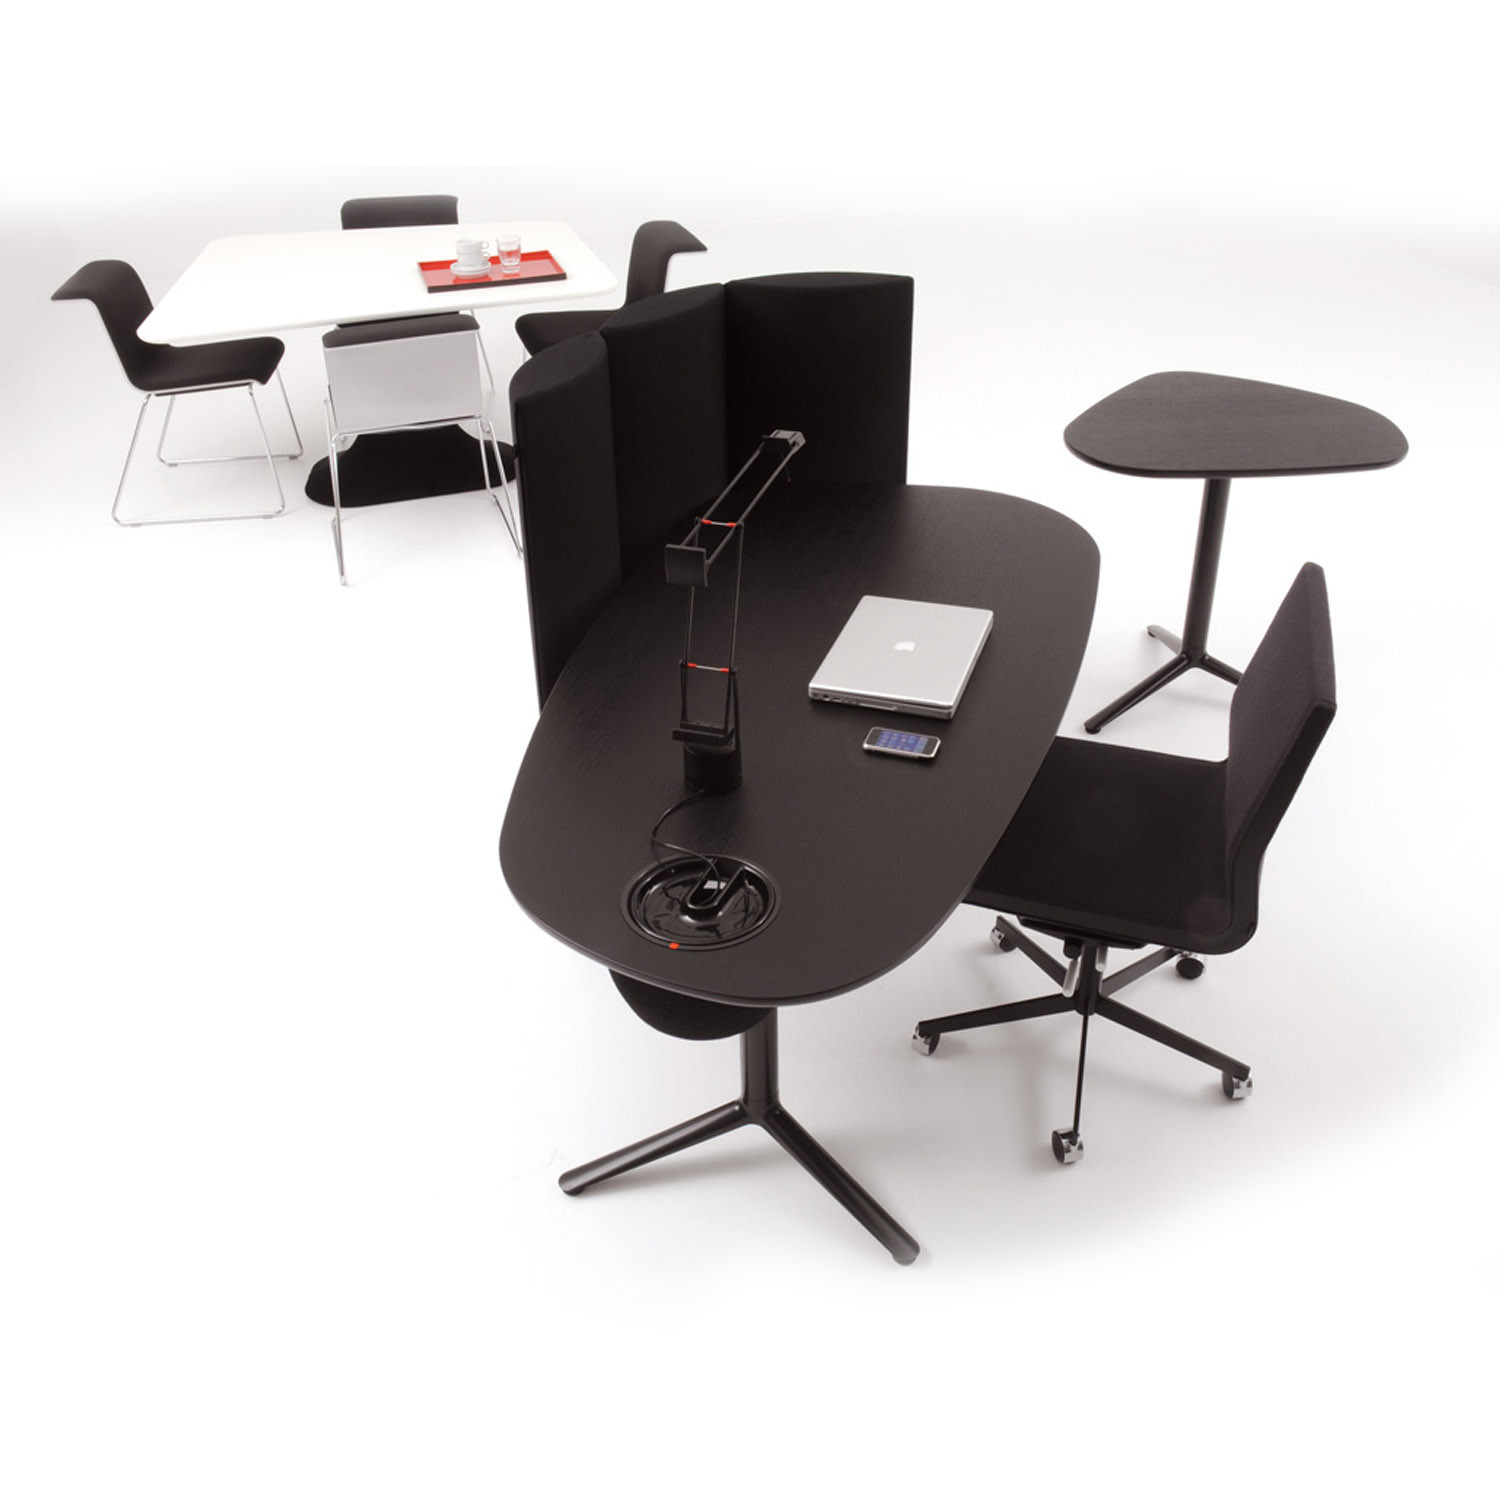 Kei Fixed Height Desks